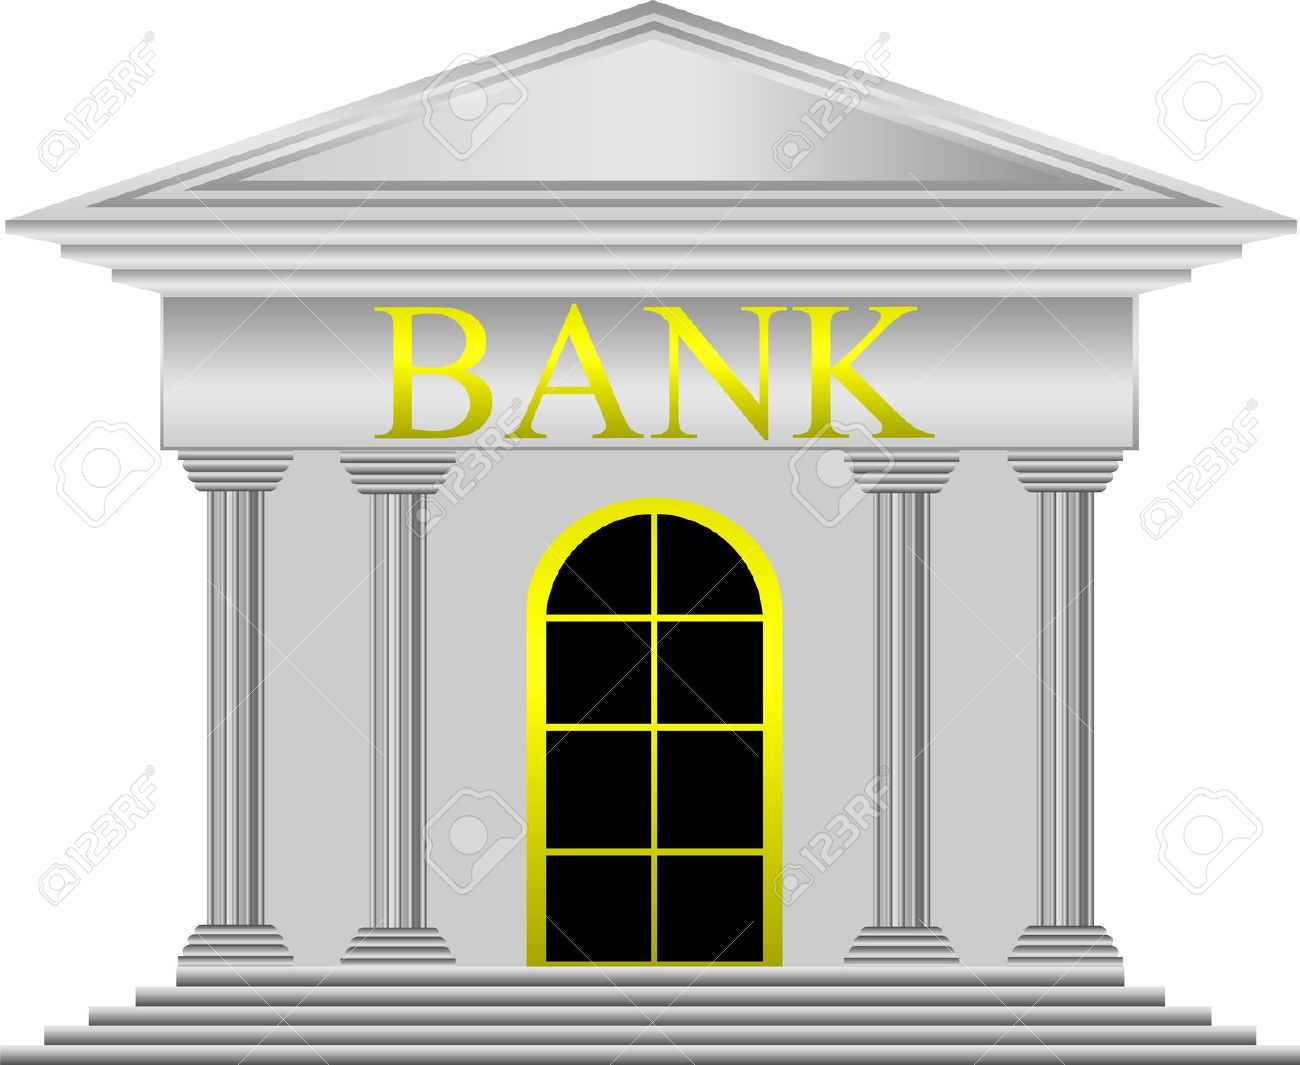 Bank clipart page 1 2